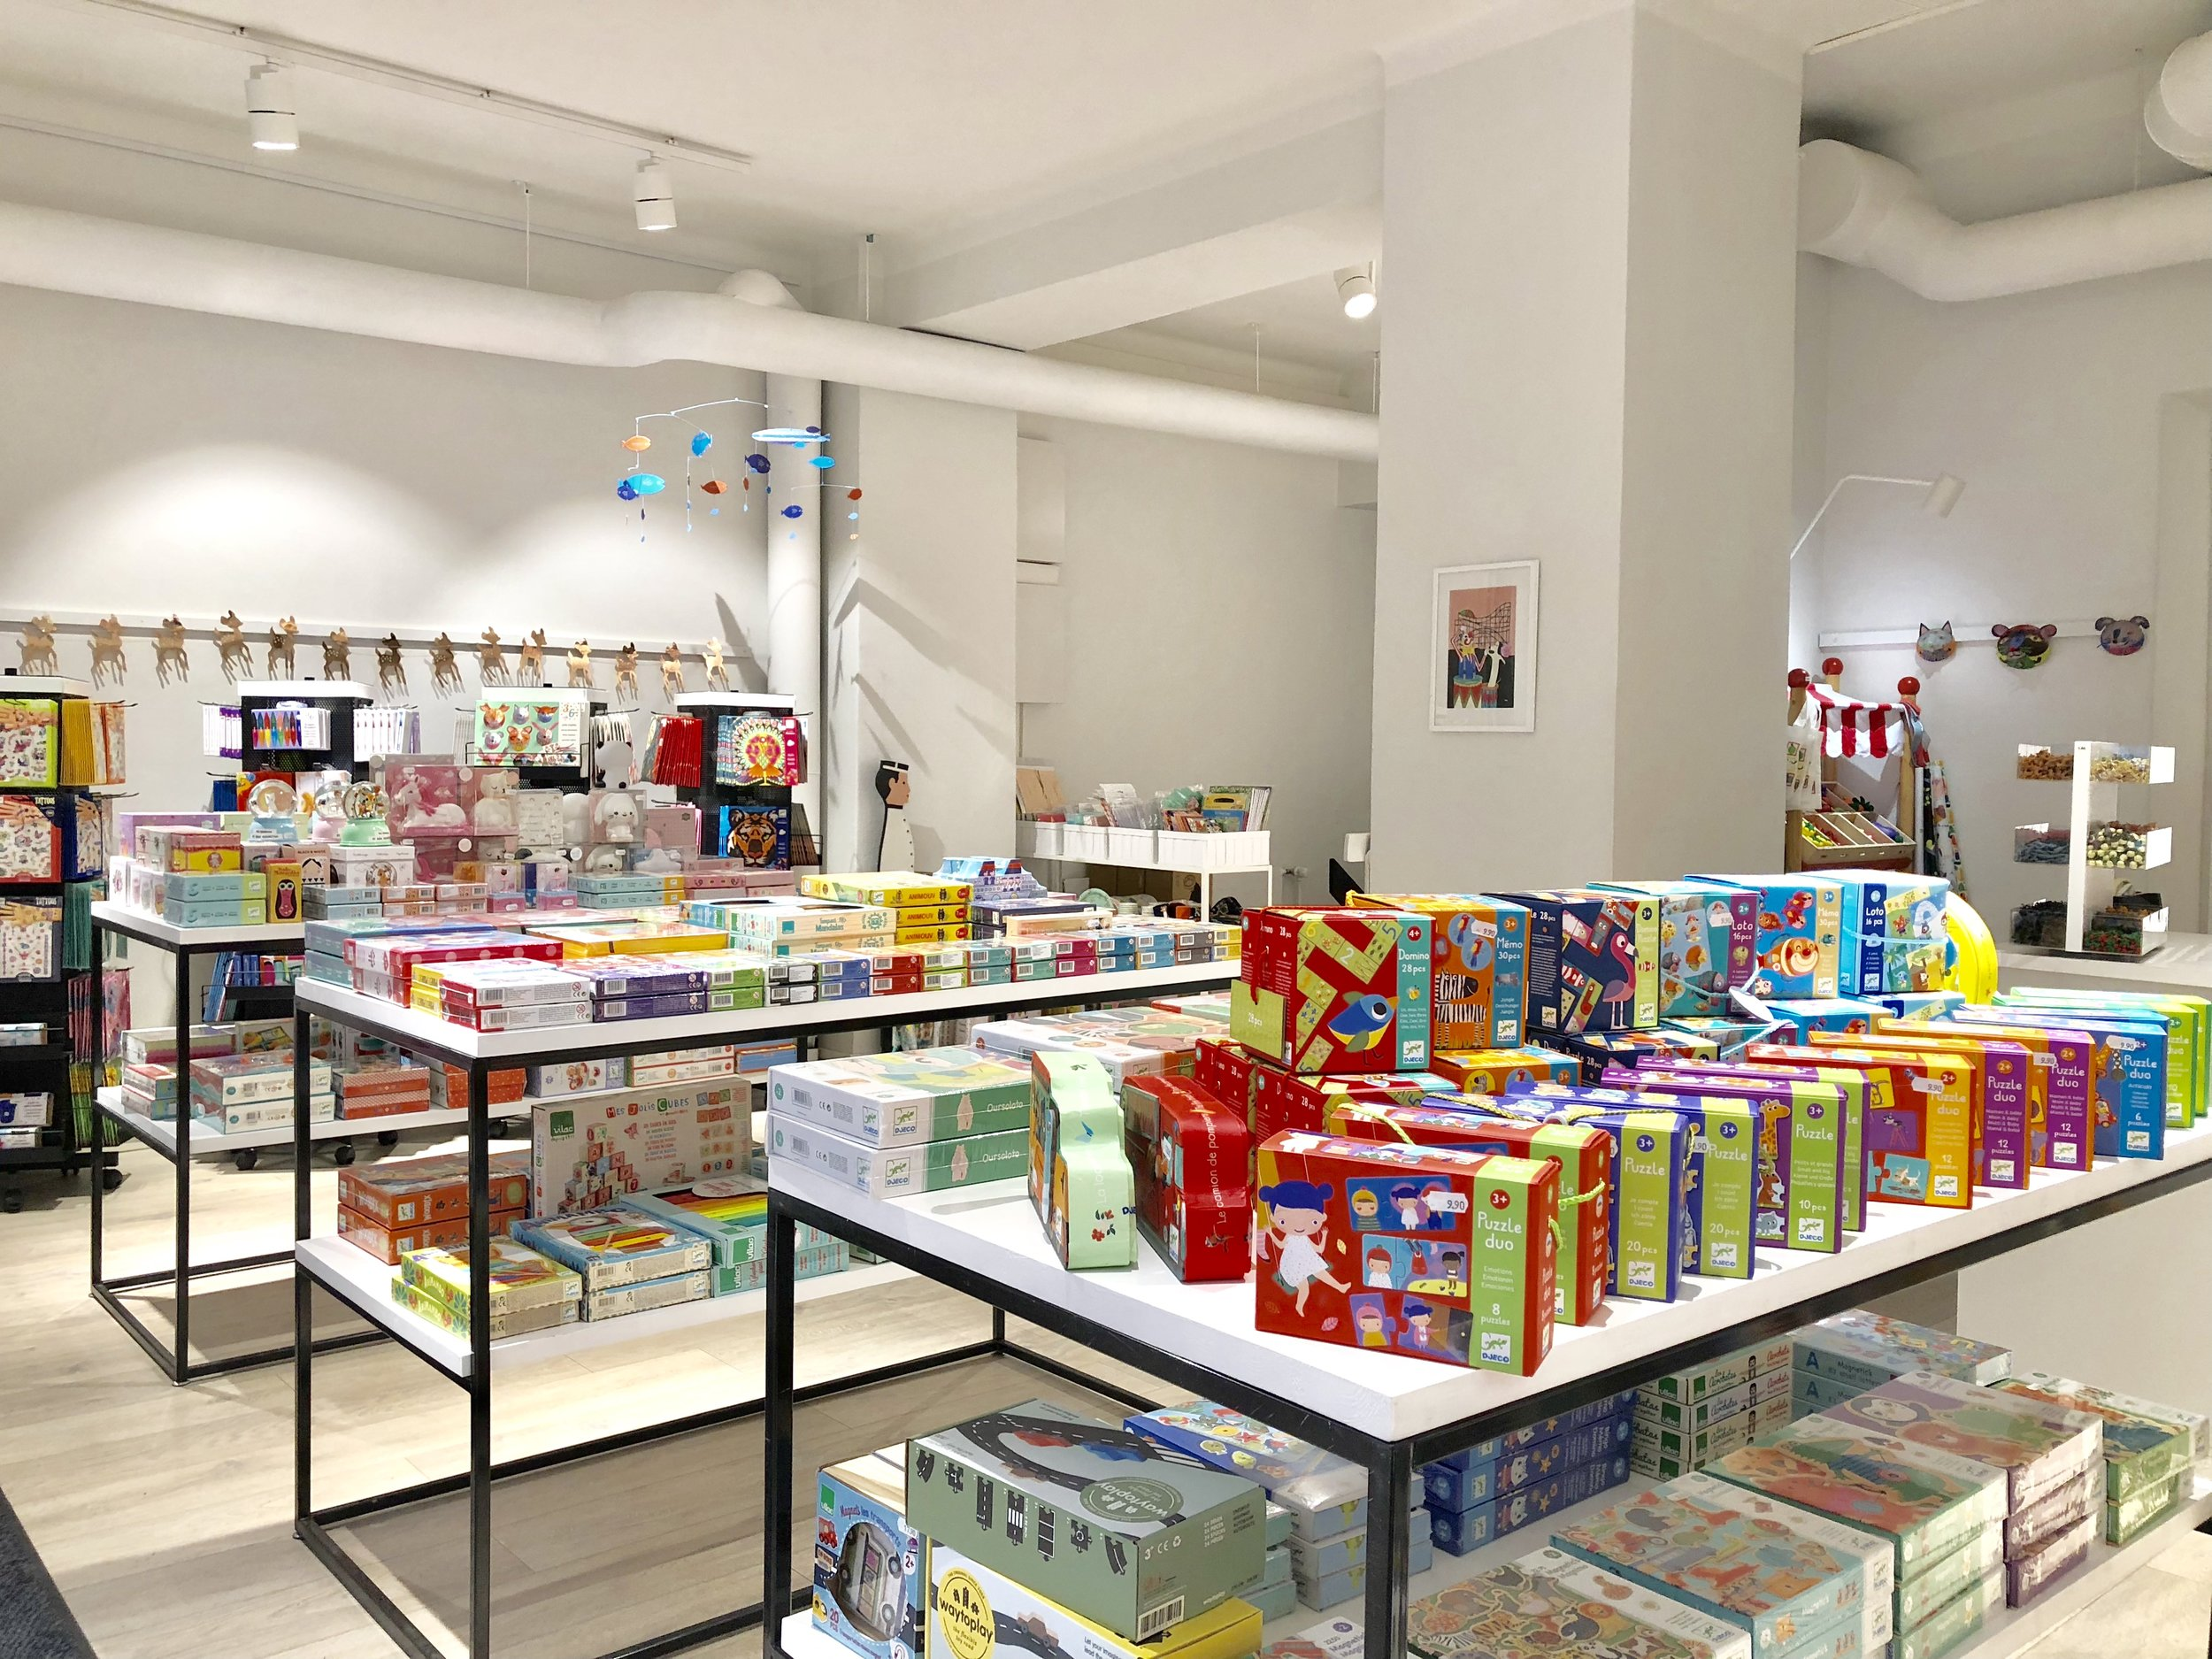 Zicco children's toys and clothes store in Helsinki